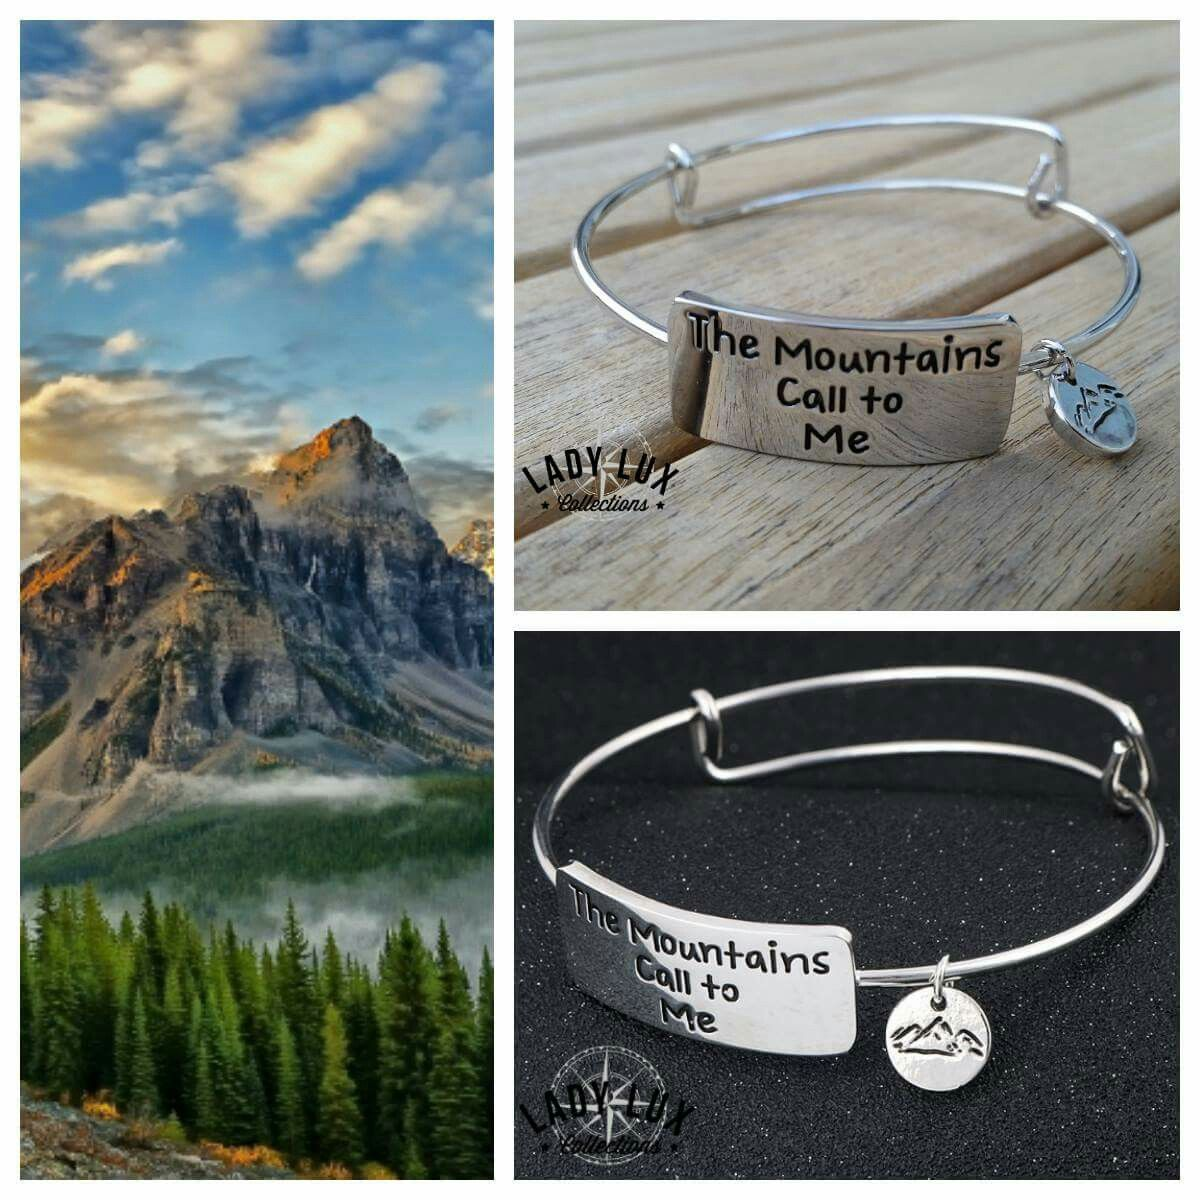 ⛰ LOVE THE OUTDOORS? Our Solid & Sturdy Premium Mountain Bangle is 70% OFF & FREE WORLDWIDE SHIPPING! Get It Here ➡ https://goo.gl/6iL8OP  Sturdy enough to wear on your hikes and treks AND perfect to wear when you're out and about! The sale is for a LIMITED-TIME ONLY! HURRY - DON'T MISS OUT ON THIS DEAL!!! ♥🌄🏔